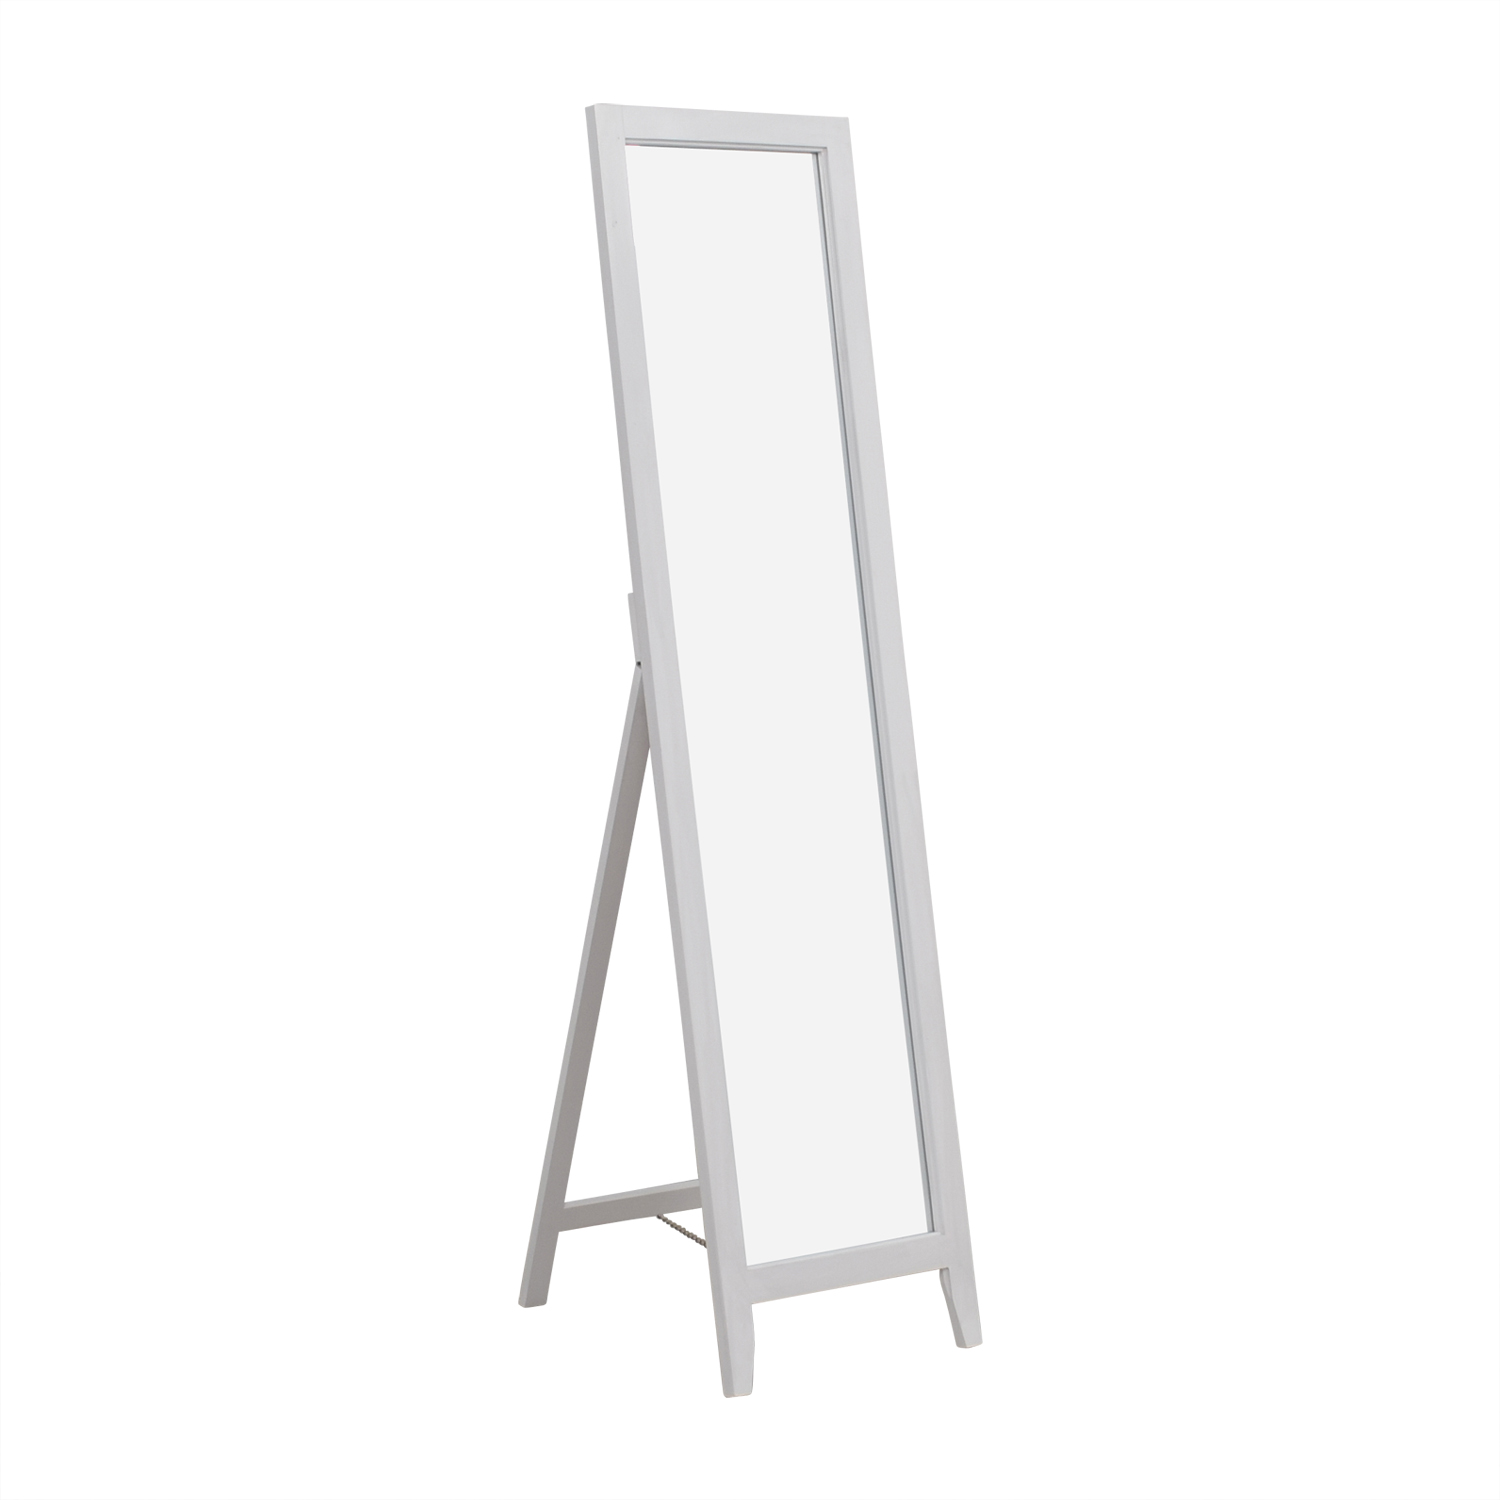 84 off macy 39 s macy 39 s ailey gold framed mirror decor for Floor mirror white frame